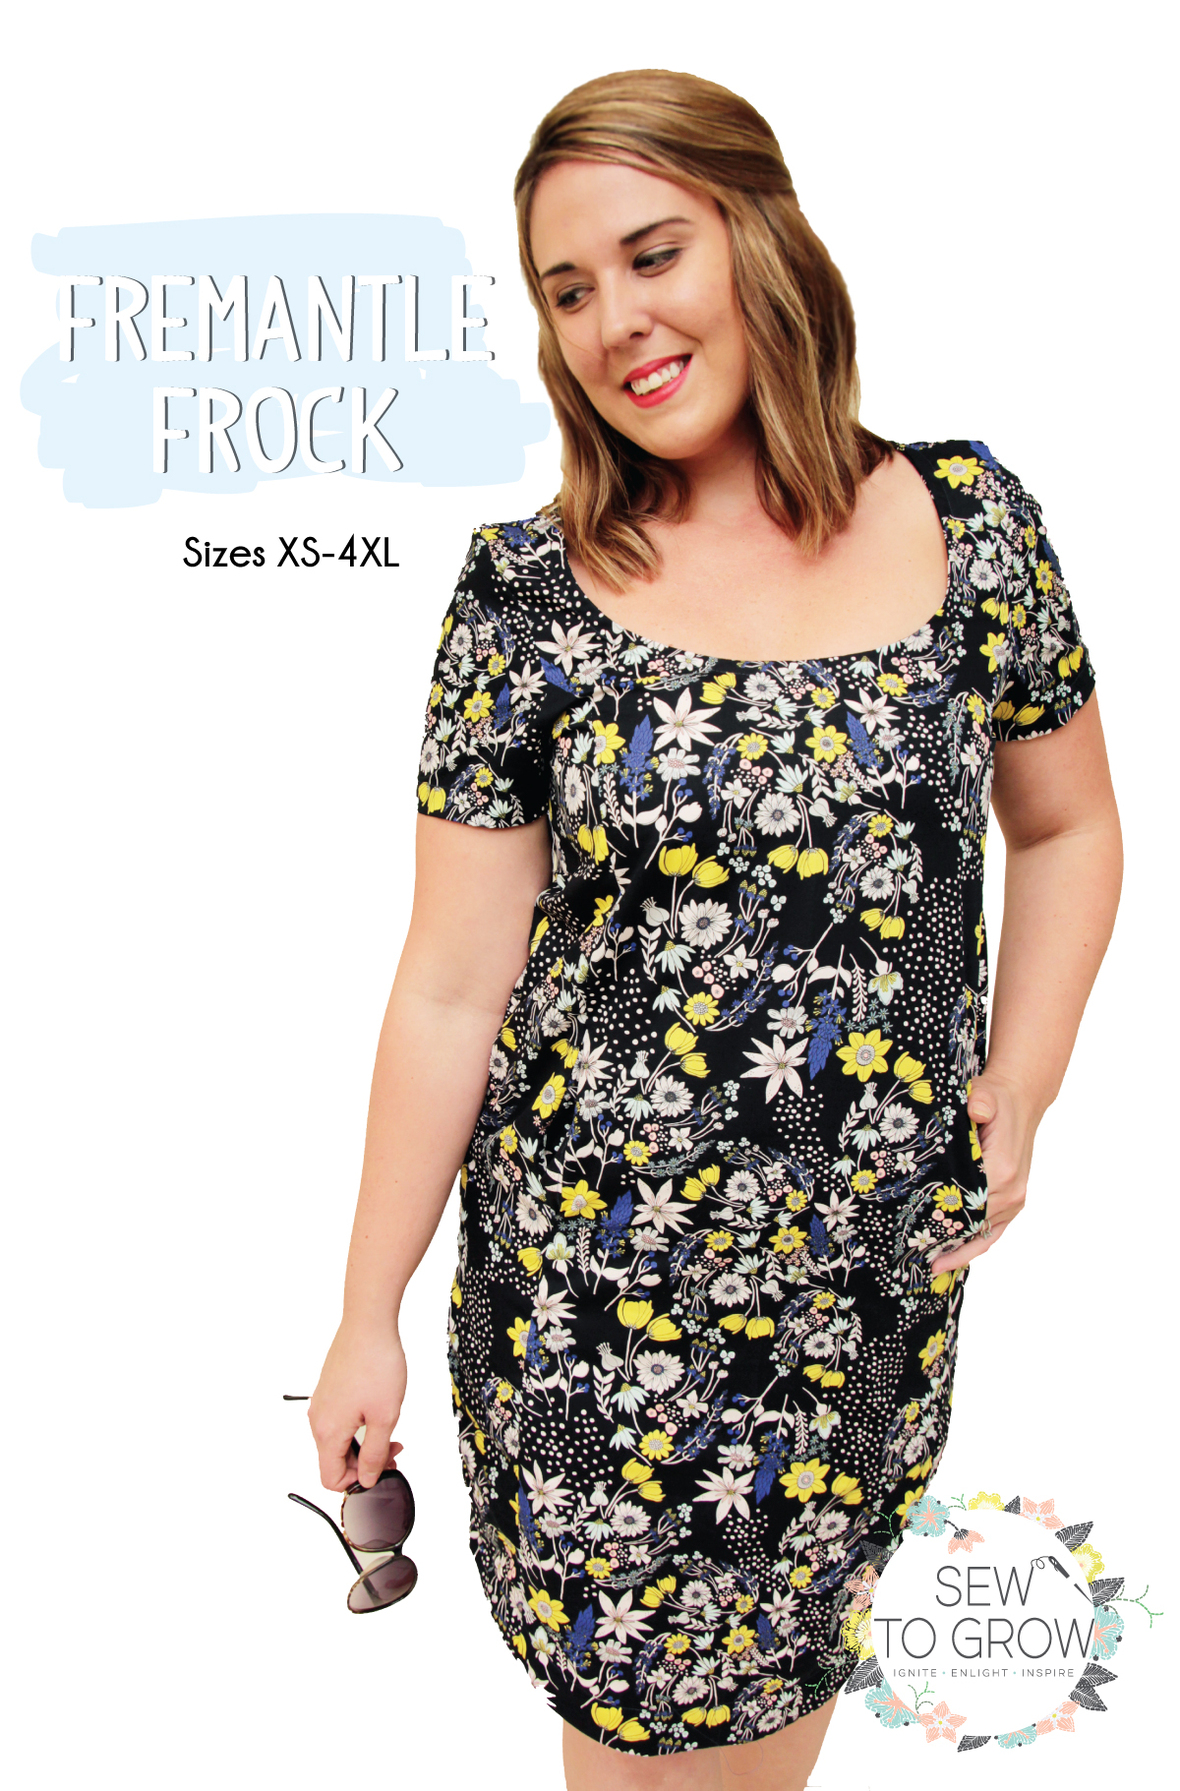 sew to grow  fremantle frock sewing pattern